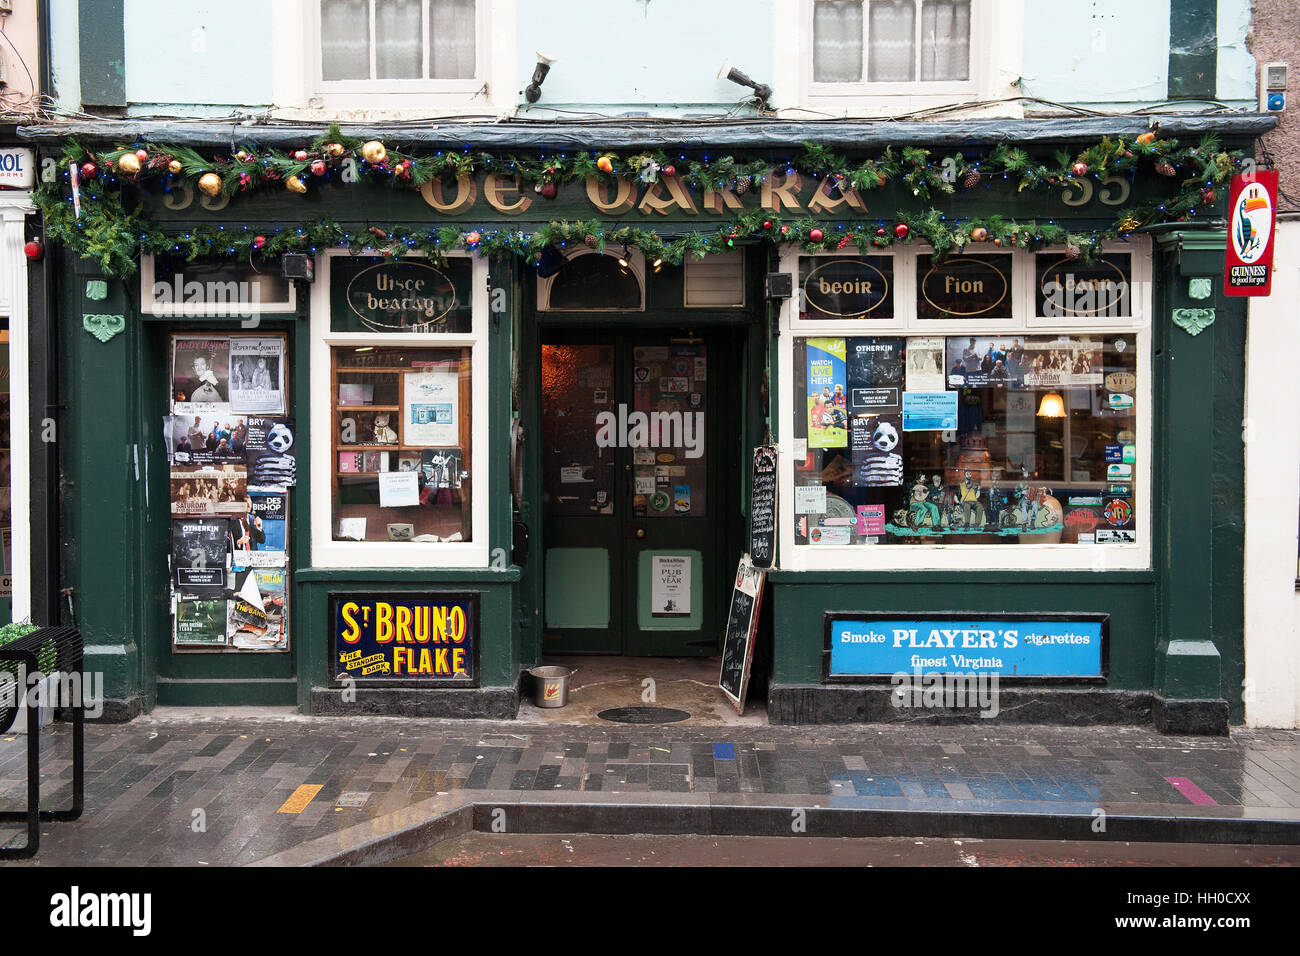 The famous De Barra's Pub in Clonakilty, West Cork, Ireland known for live music - Stock Image